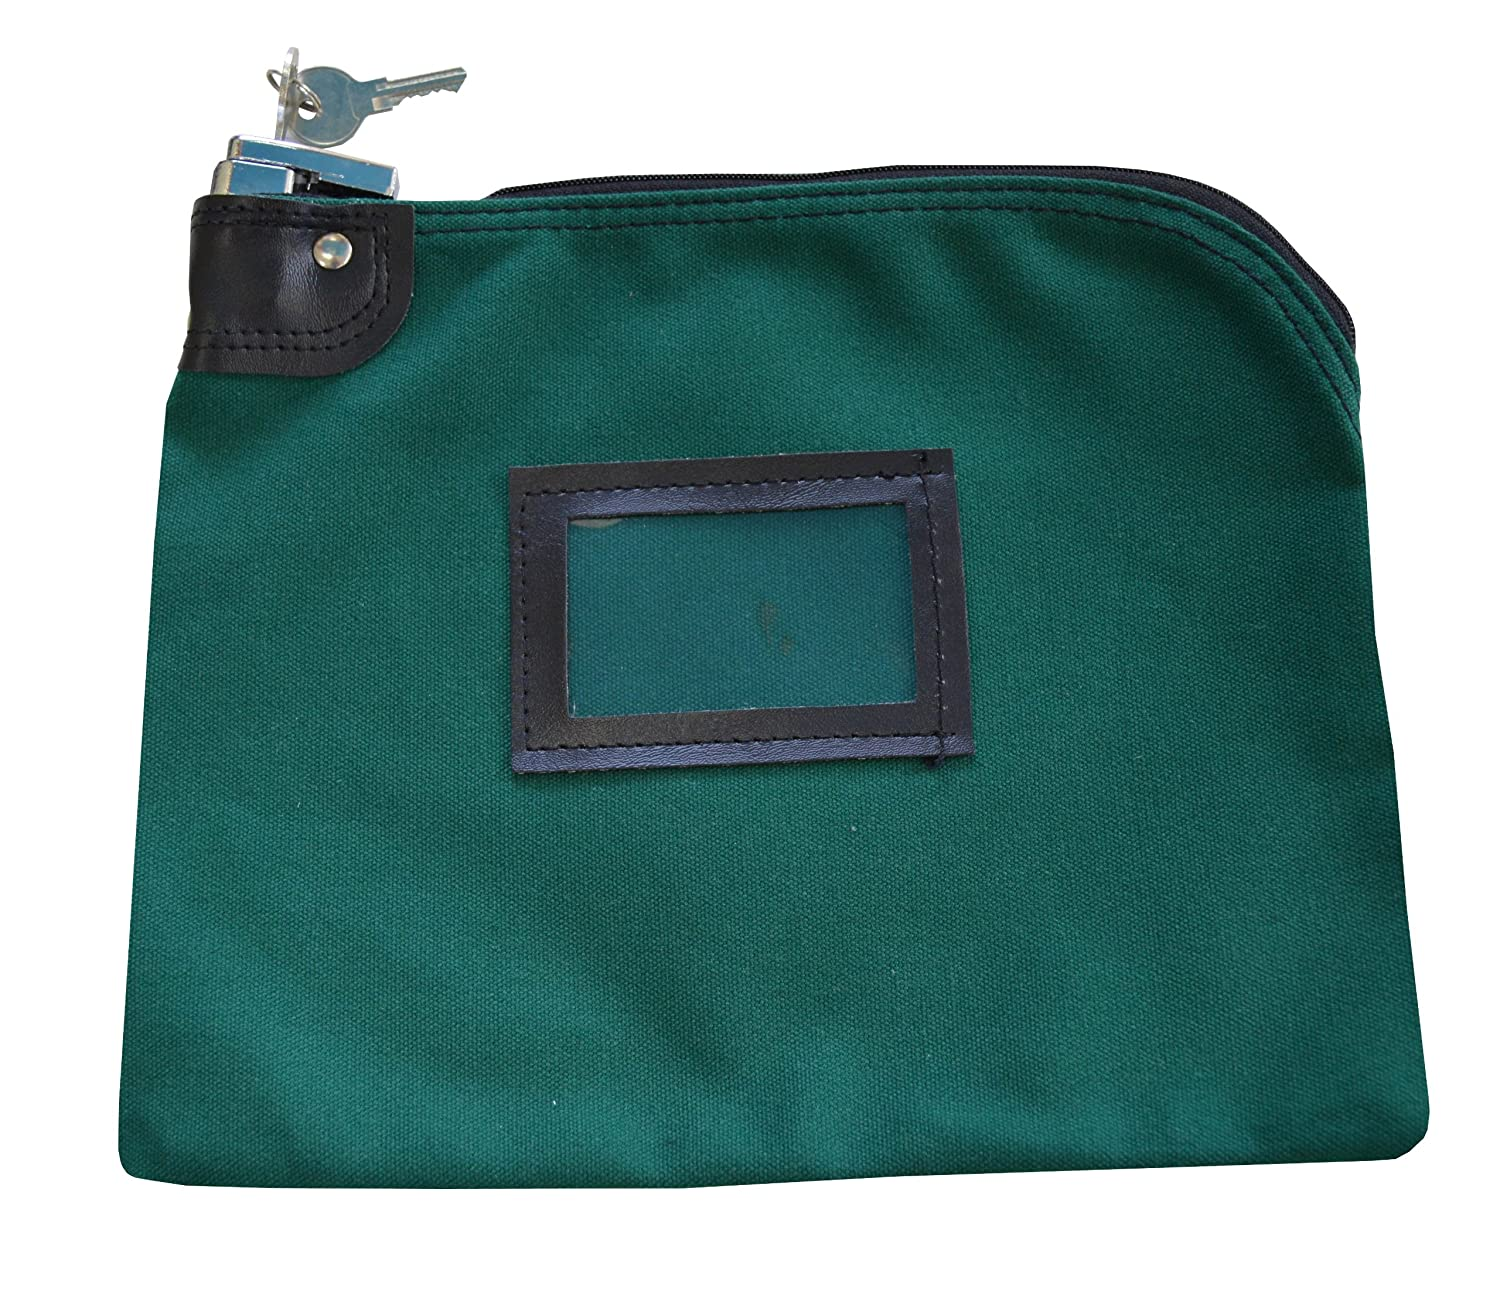 Locking Bank Bag Canvas Keyed Security Forest Green Cardinal Bag Supplies 76161232